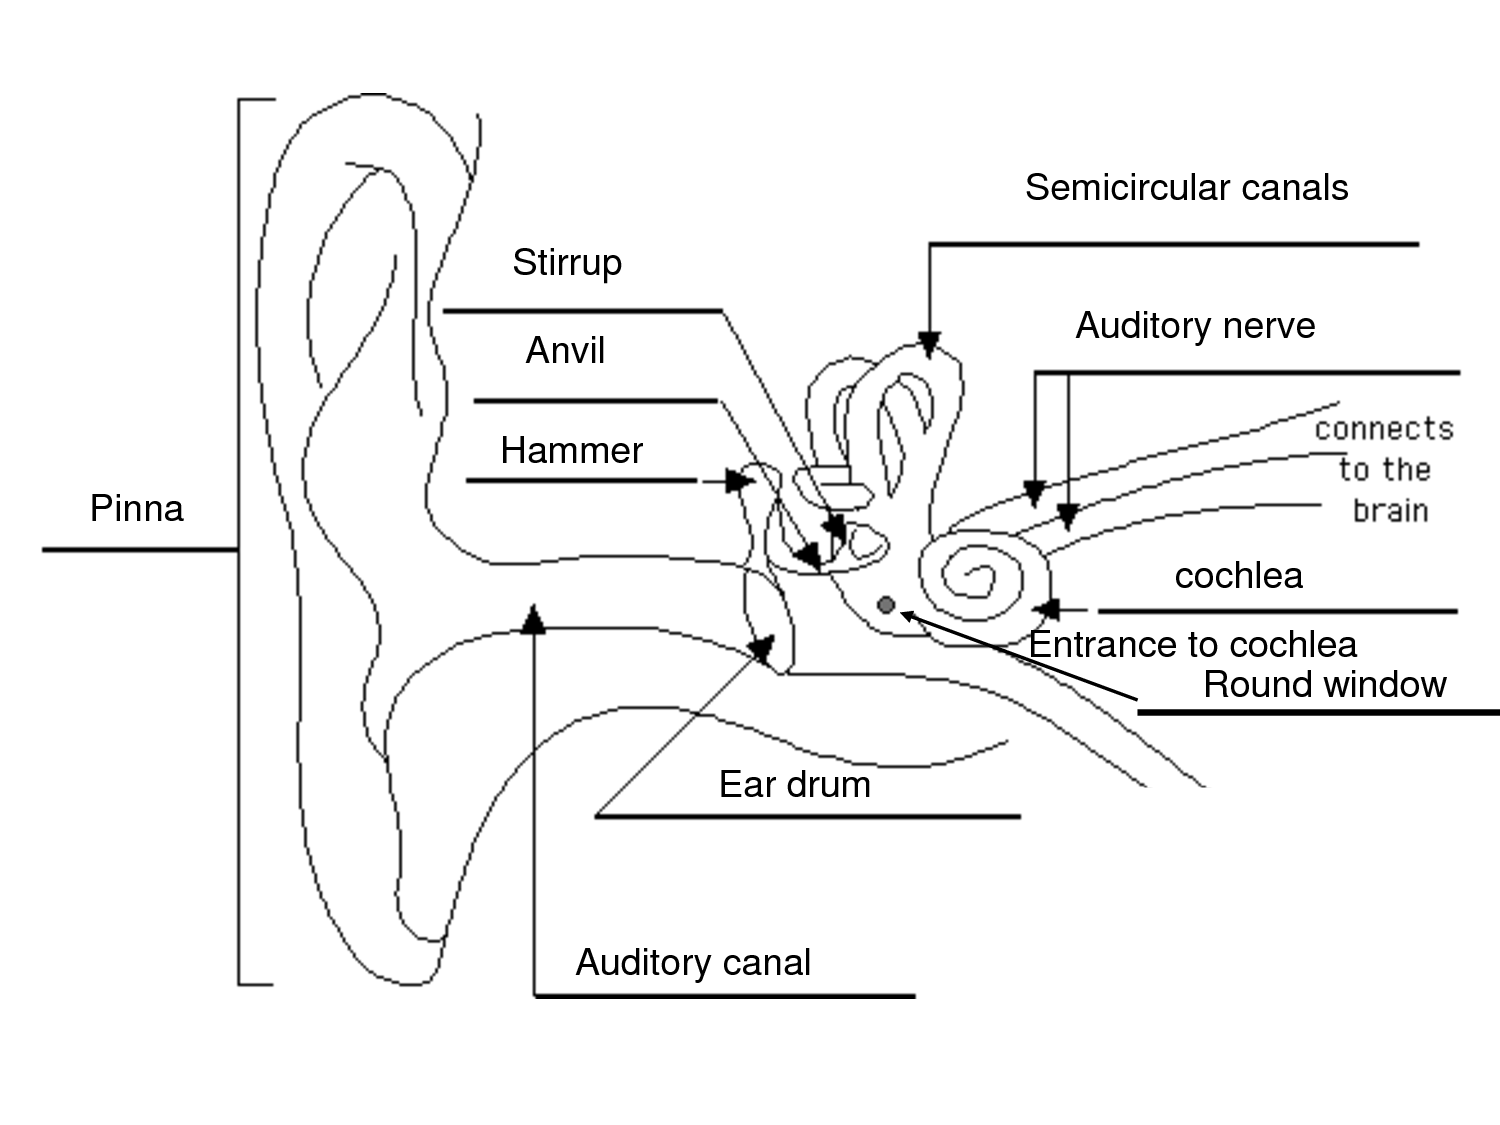 Pass page sound light and waves pinterest diagram ear diagram label quiz ear free engine image for user pooptronica